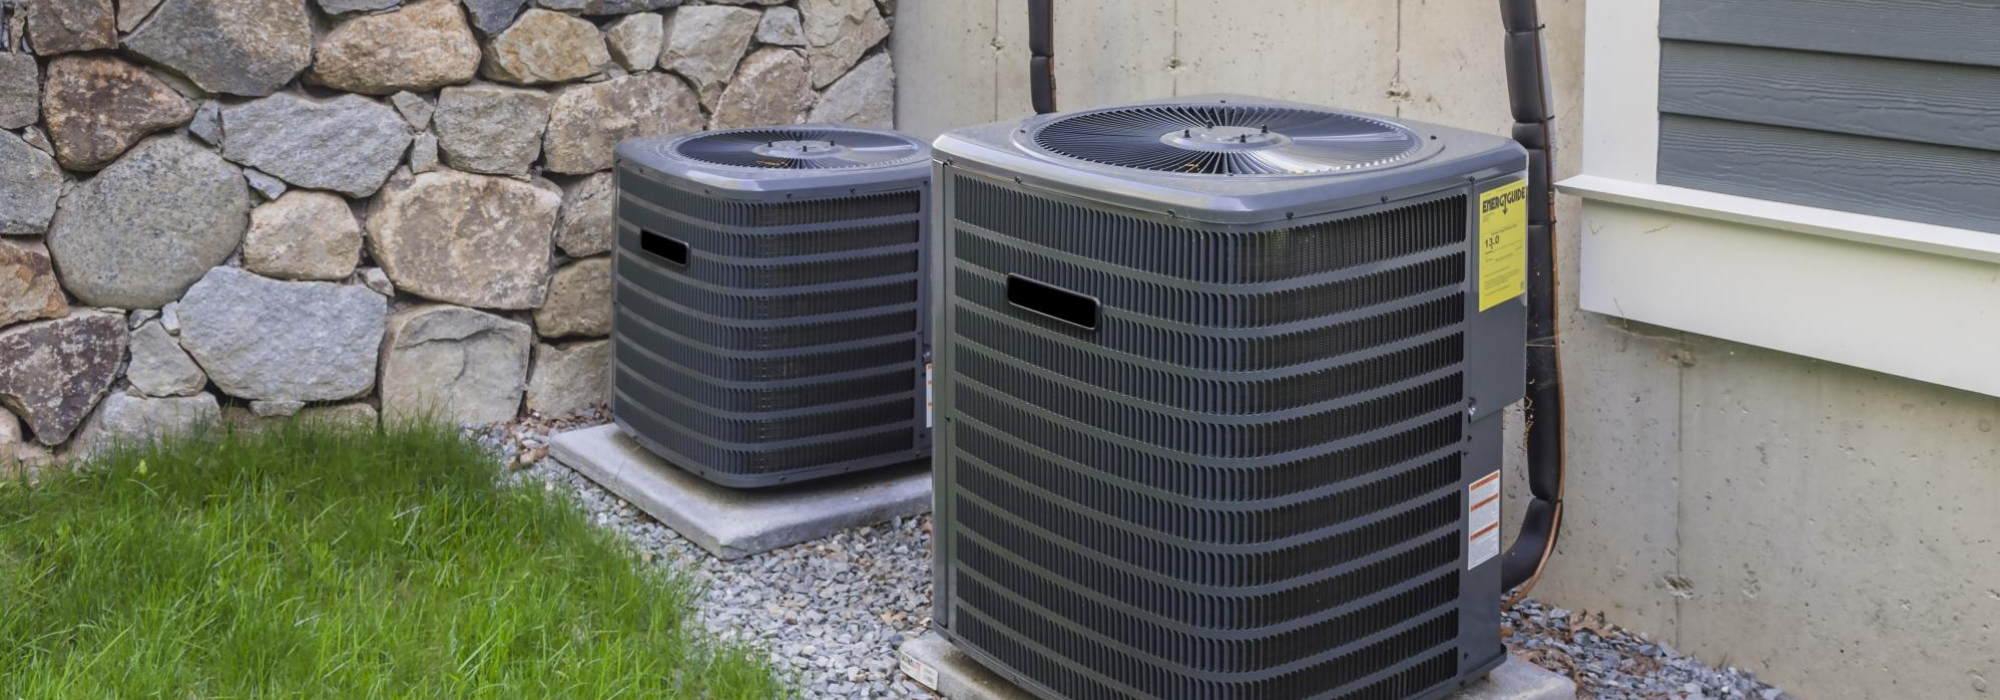 Two Residential HVAC Units